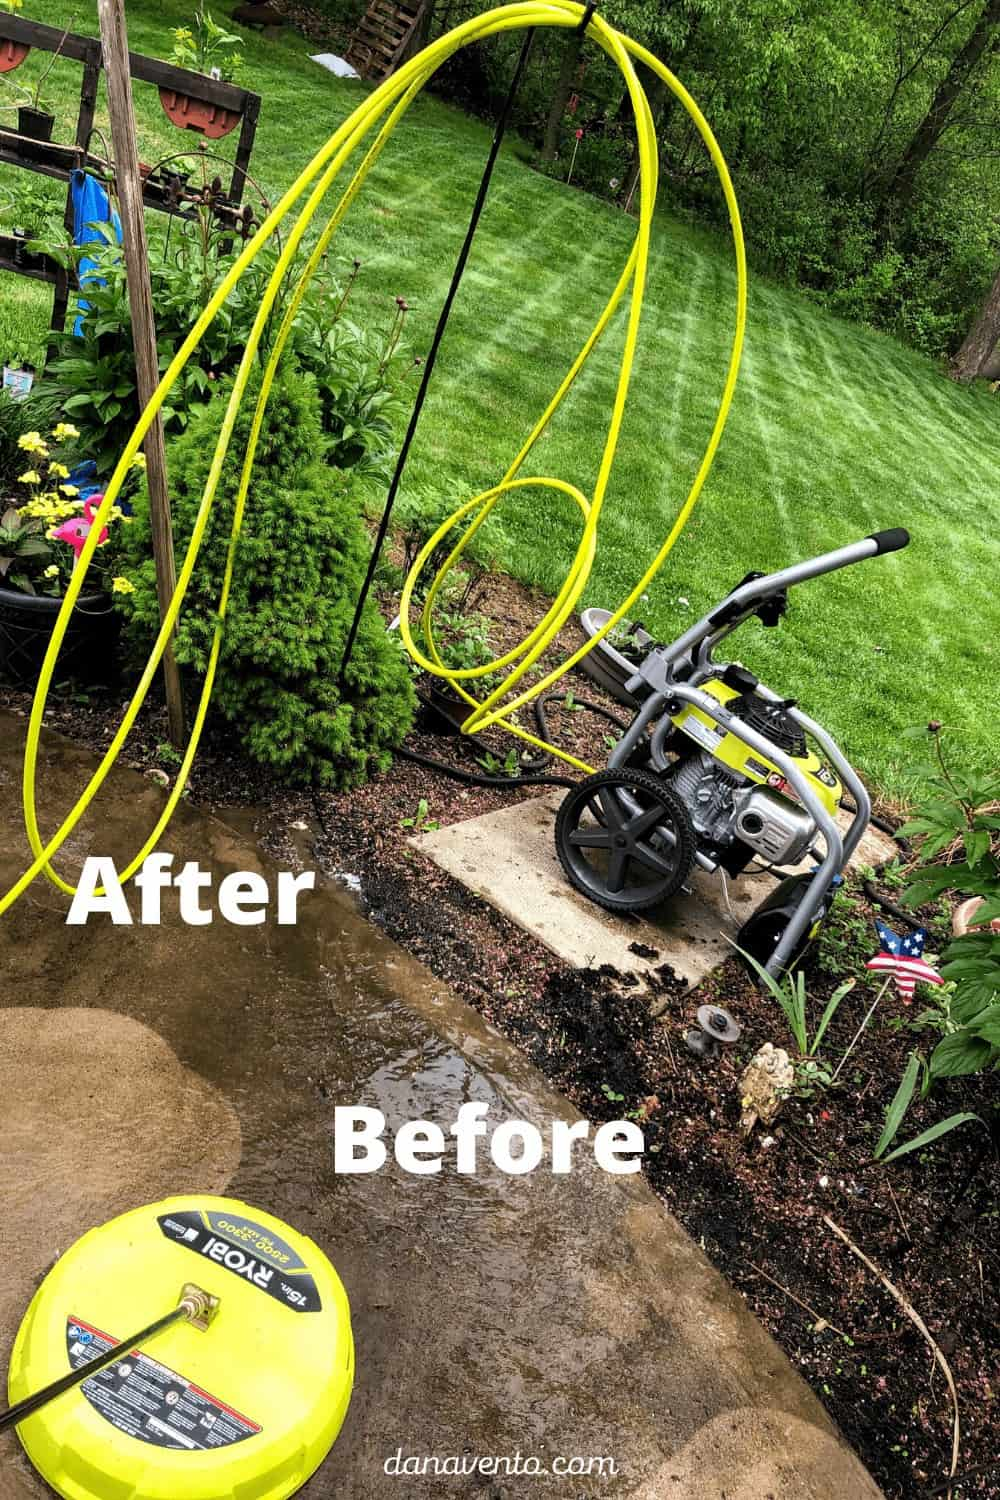 RYOBI Power washing before and after with surface cleaner